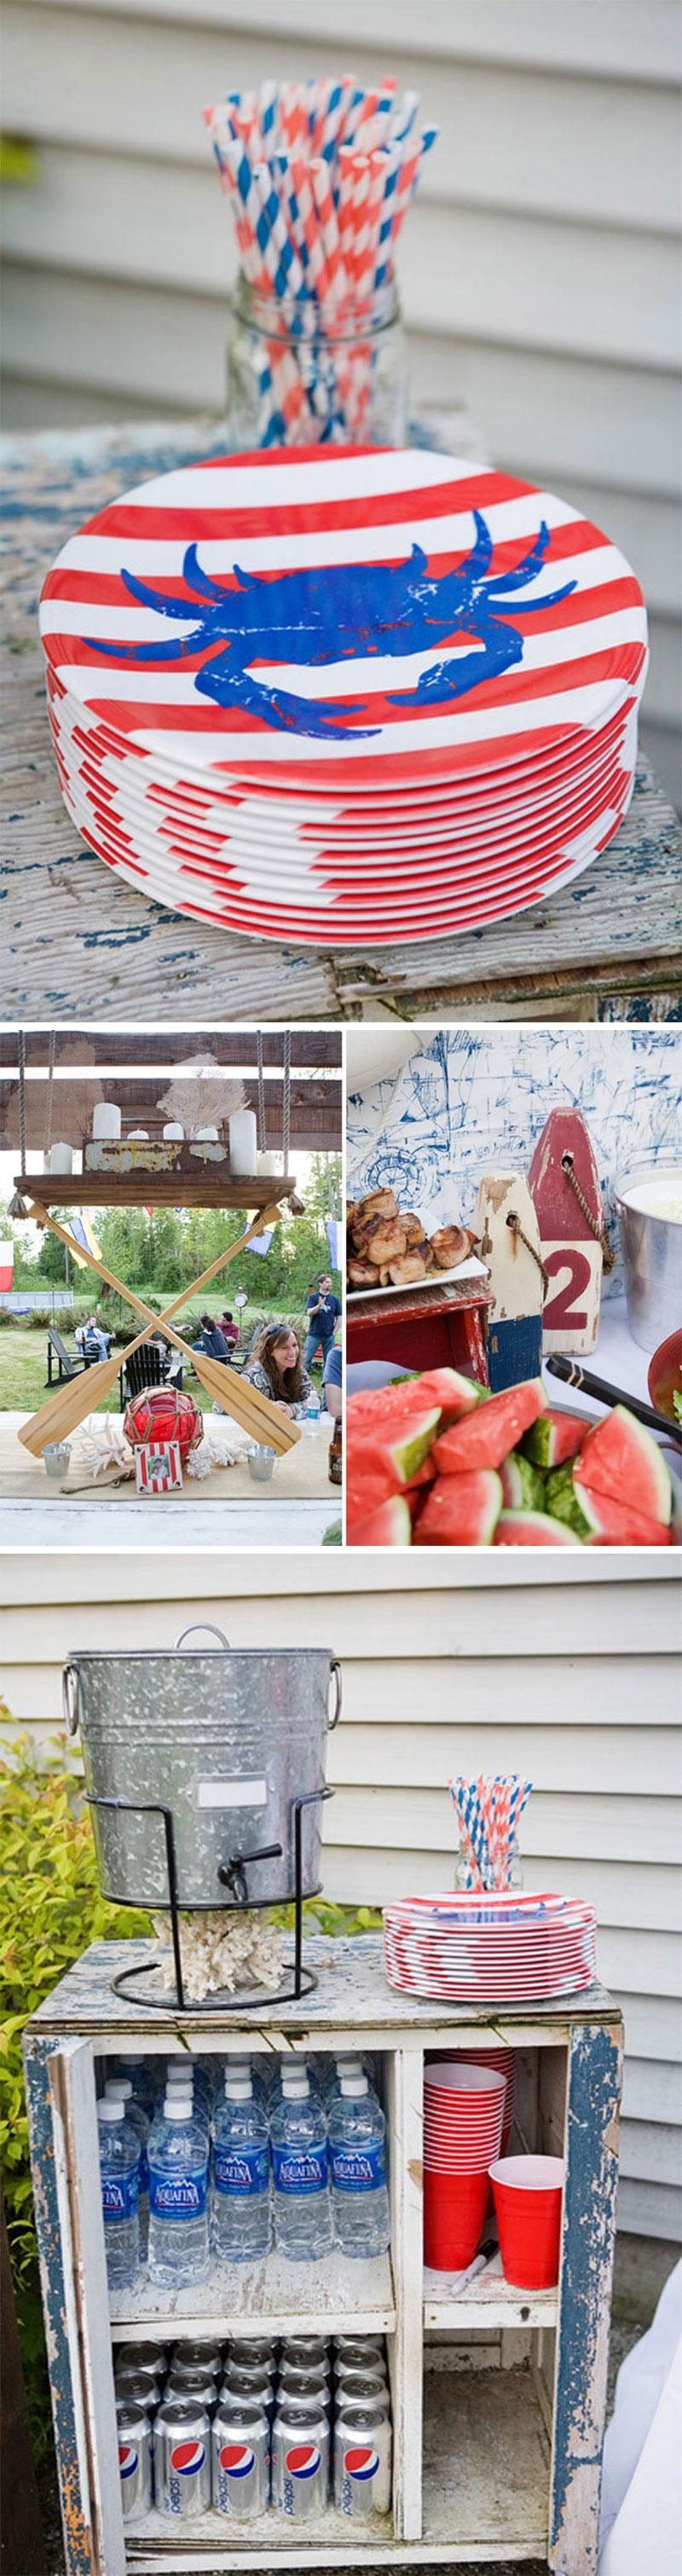 Crab Boil Party Ideas on Love The Day